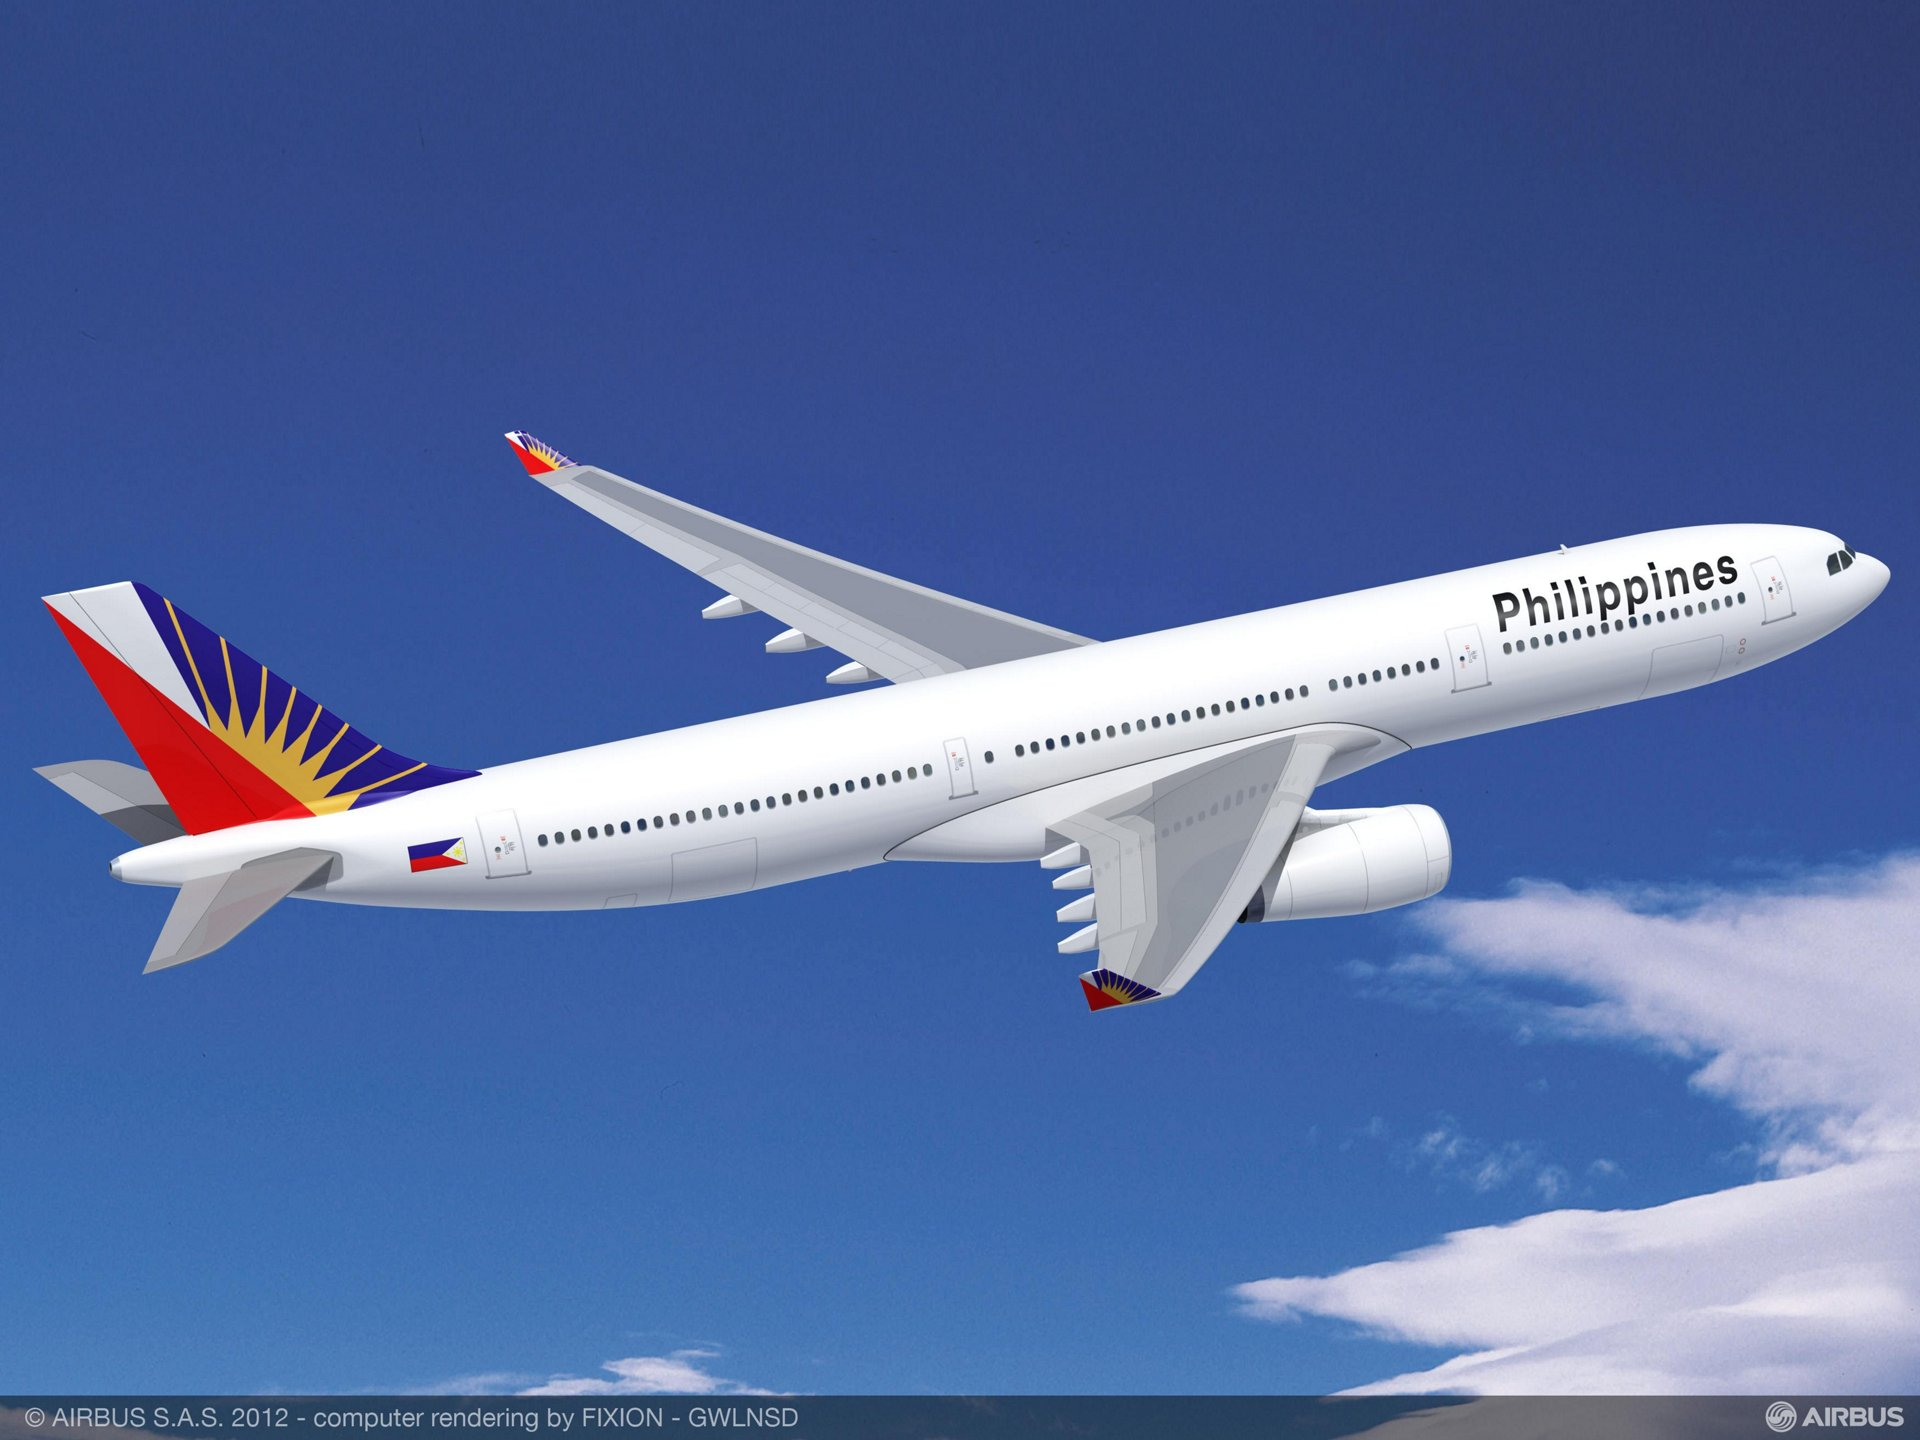 Philippine Airlines (PAL) has placed a firm order with Airbus for an additional 10 A330-300 widebody aircraft.